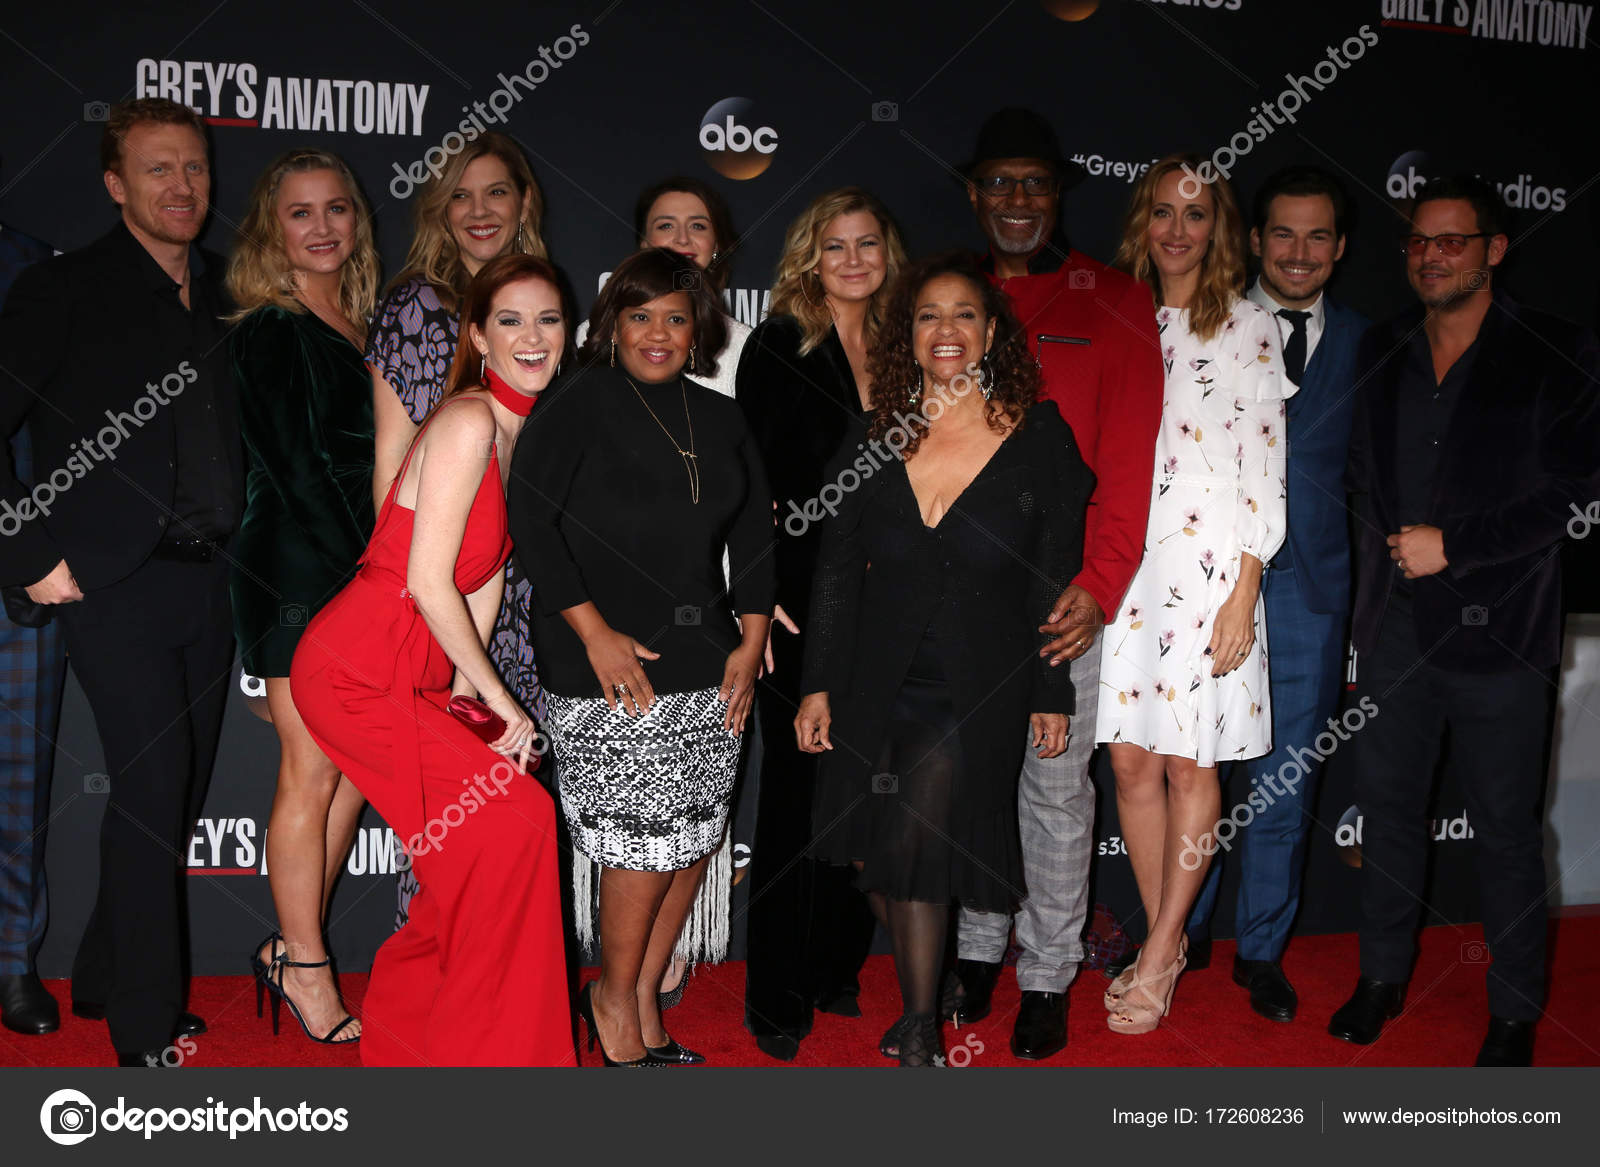 Greys Anatomy Cast – Stock Editorial Photo © s_bukley #172608236